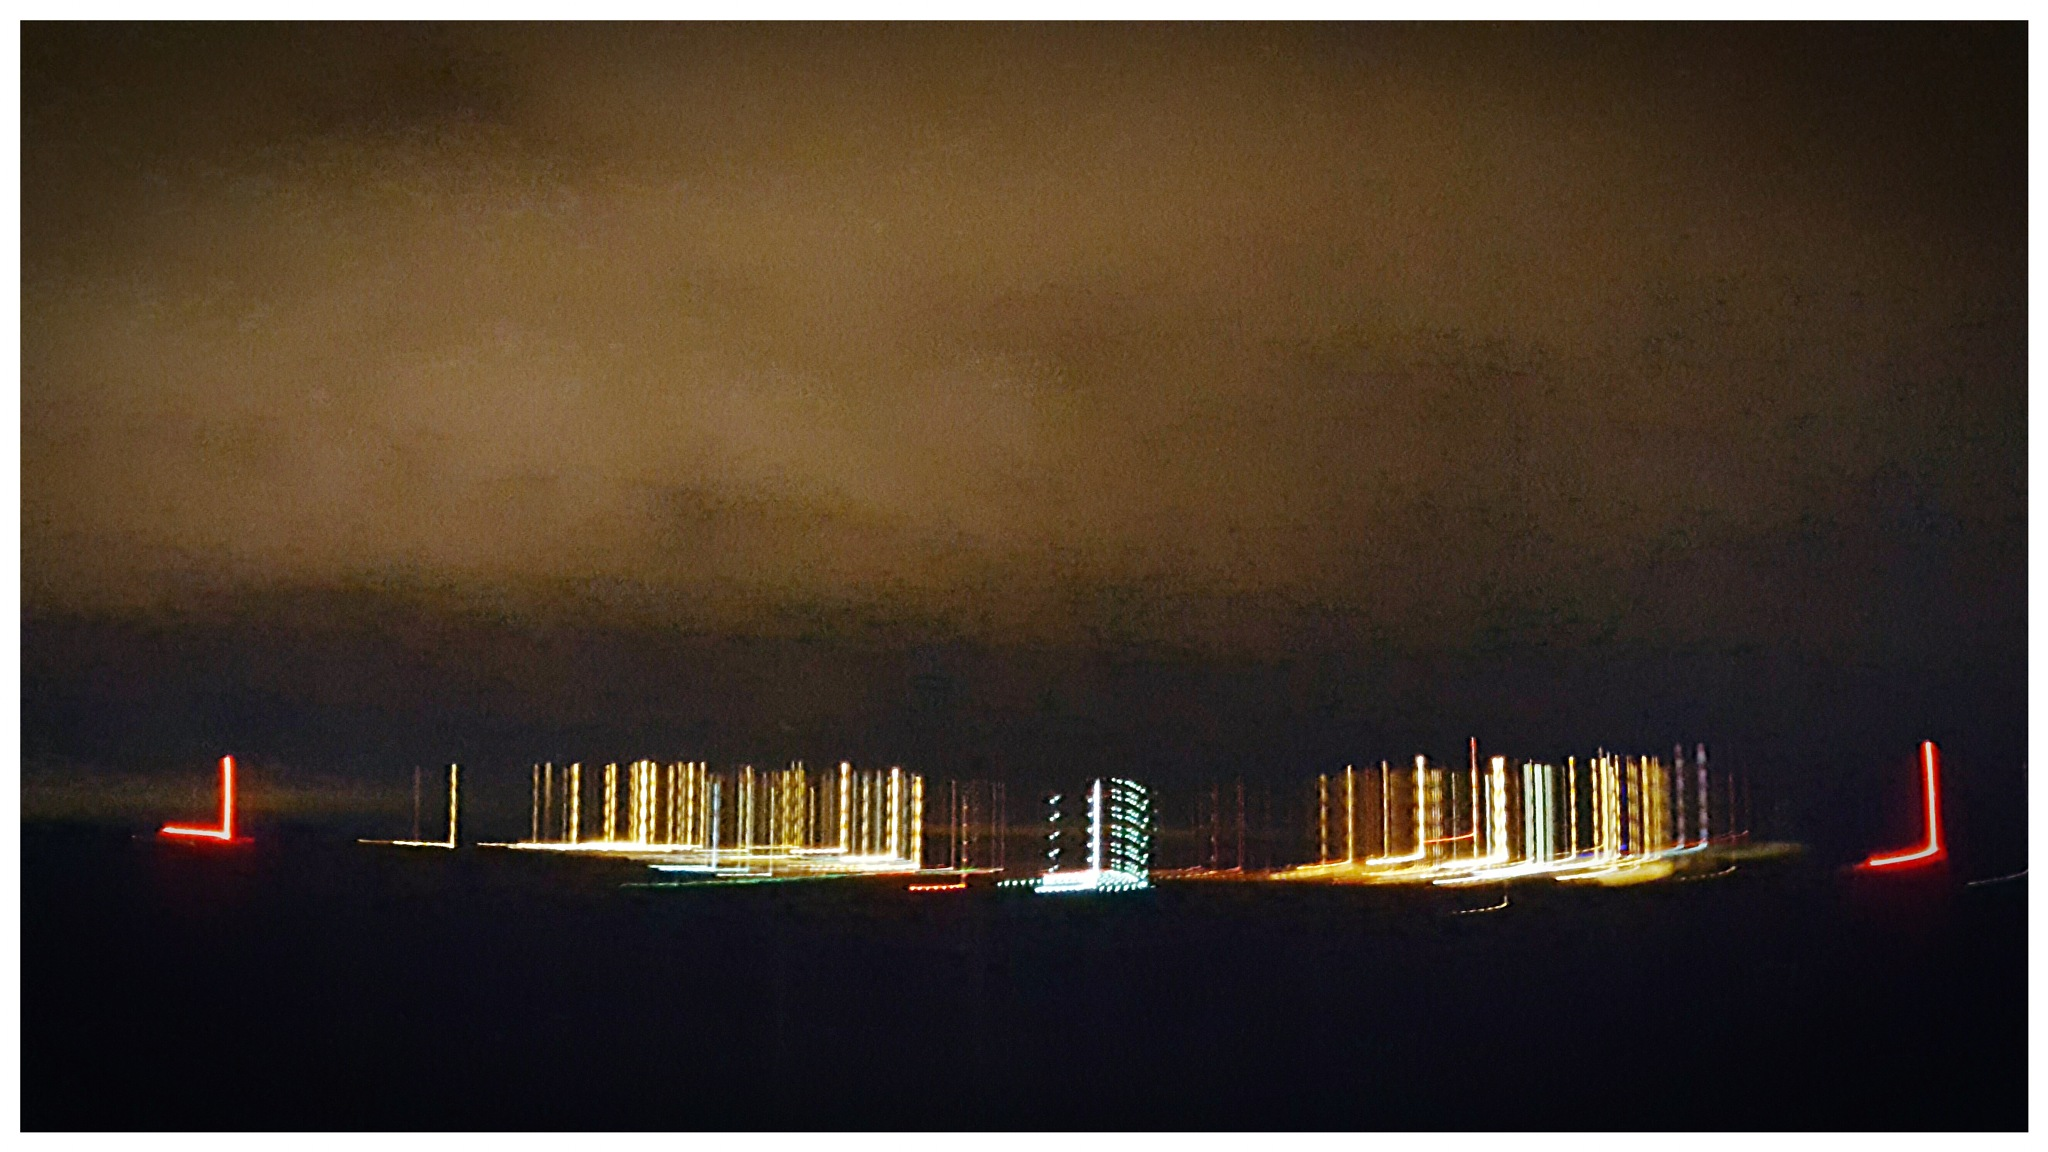 Birmingham Airport at Night by Yvonne Lewis